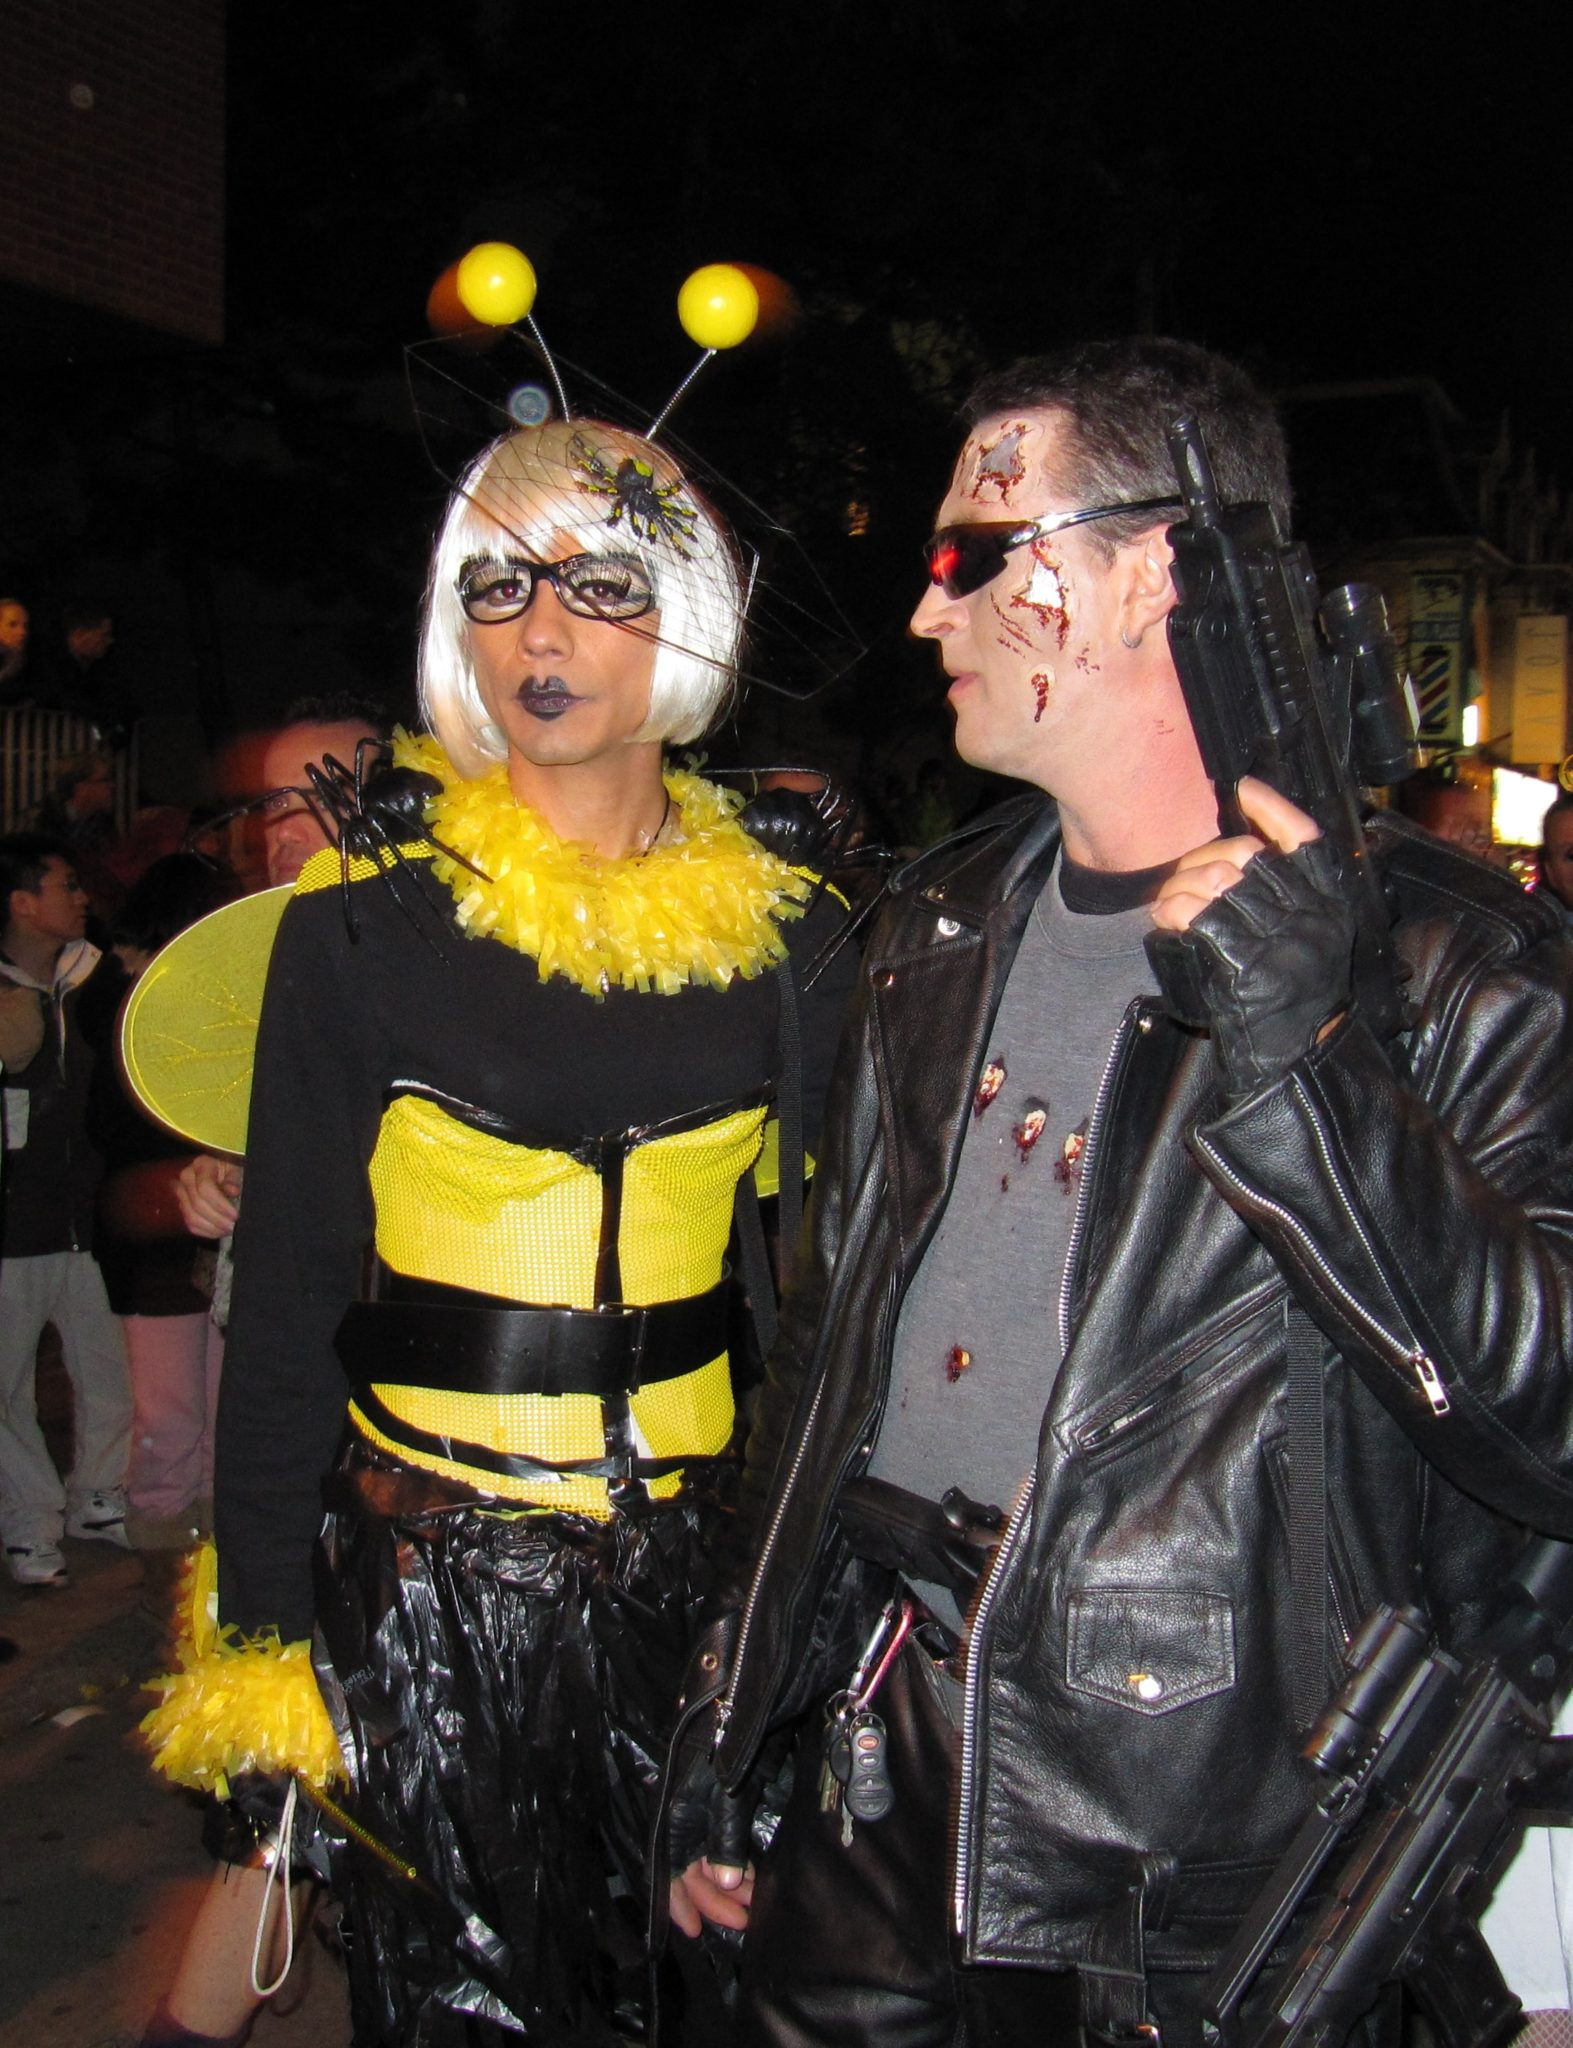 Photo of 2 people dressed as a bee and Terminator.